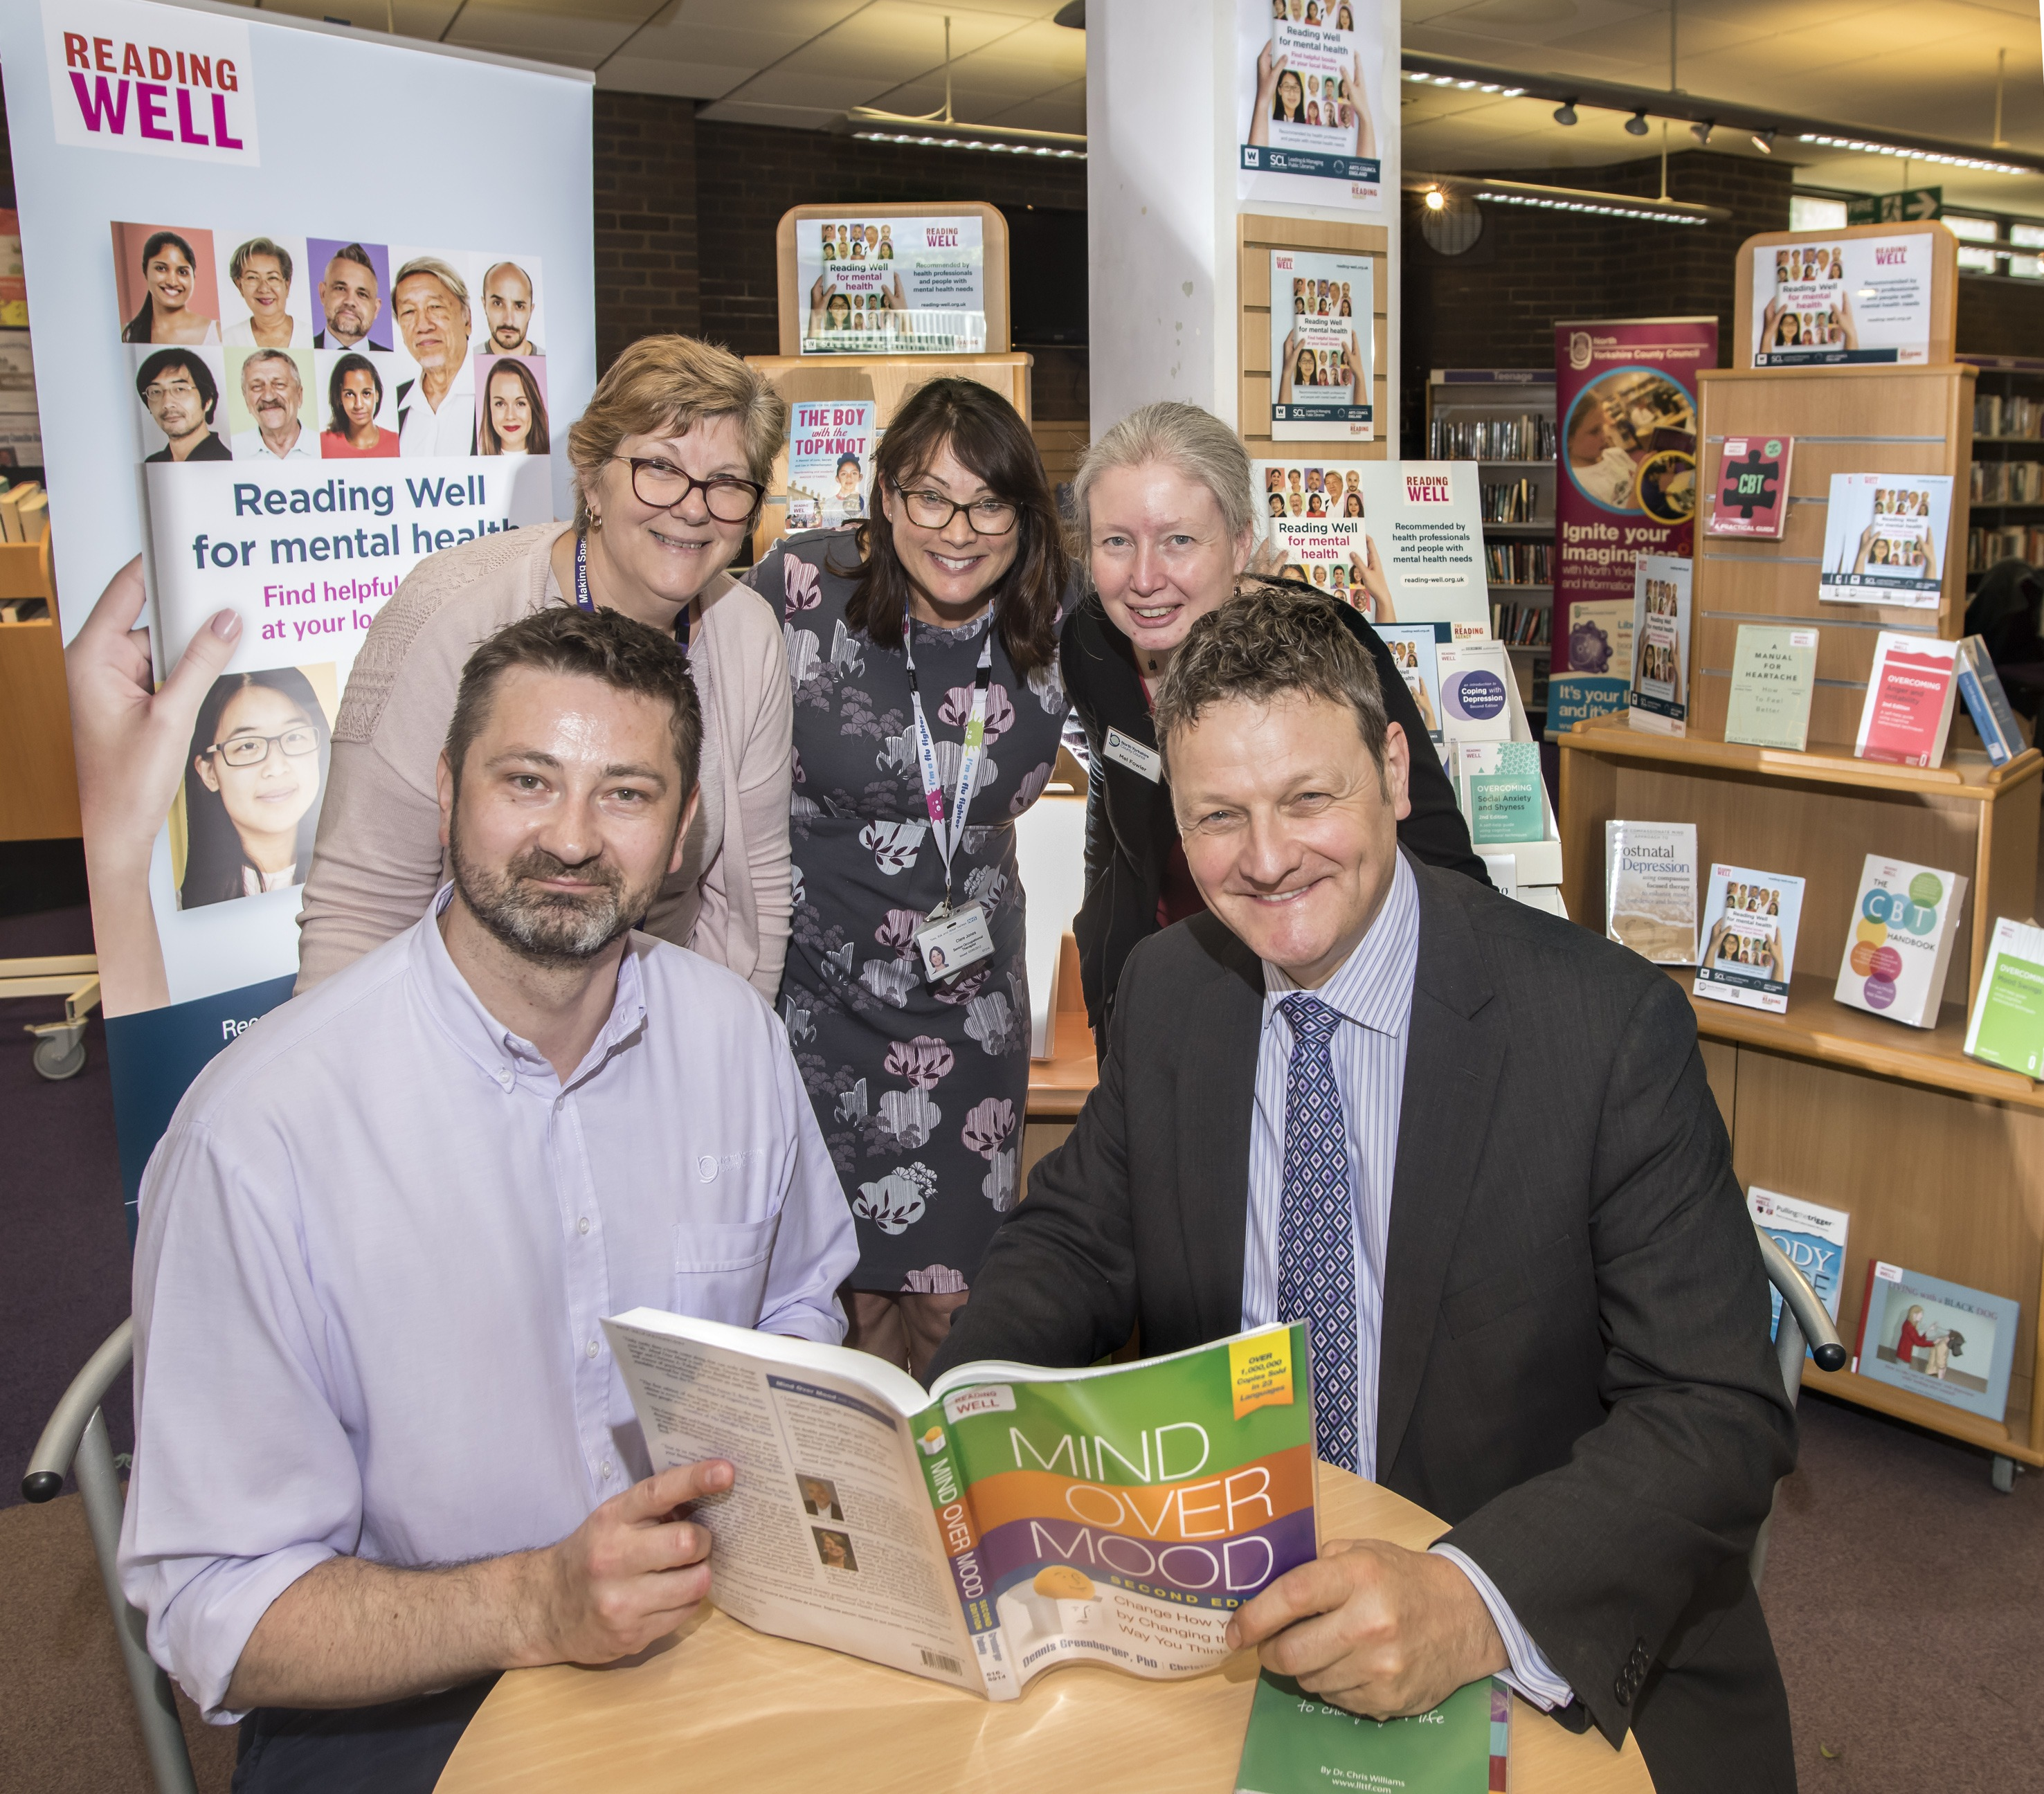 New Reading Well collection for mental health launched